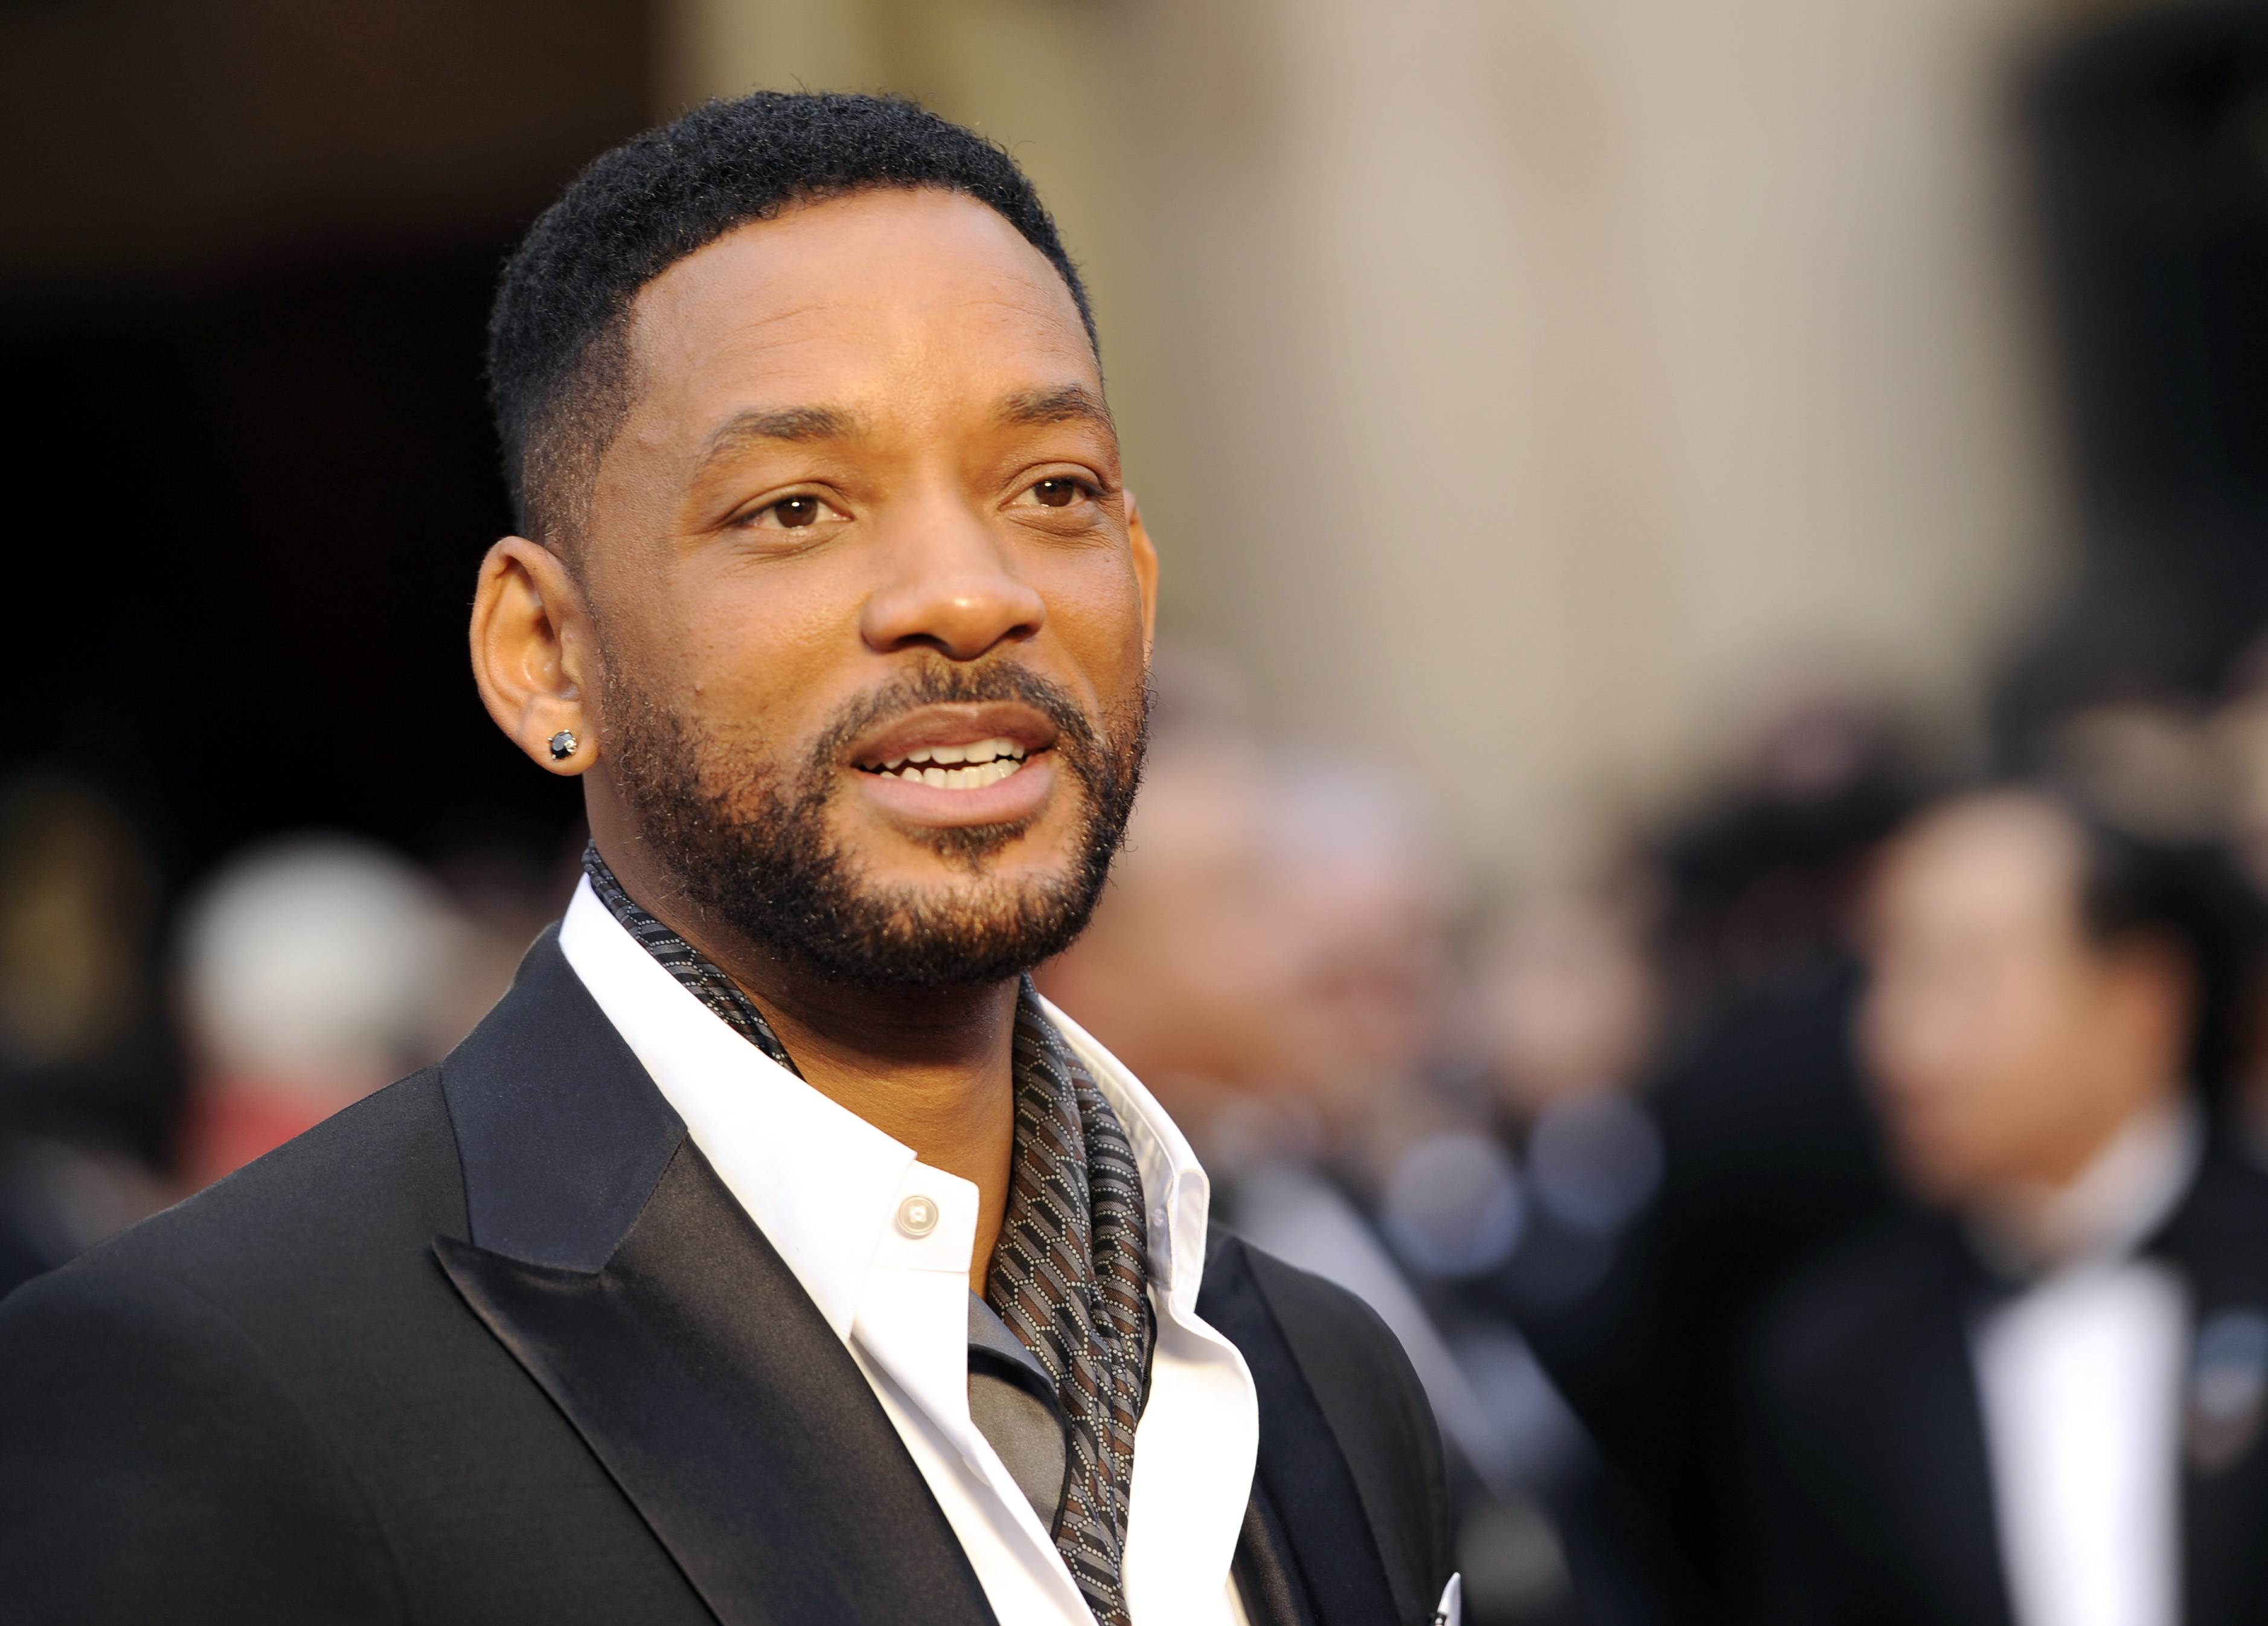 http://www.hdwallpaper.nu/wp-content/uploads/2015/07/Will-Smith-AP.jpg